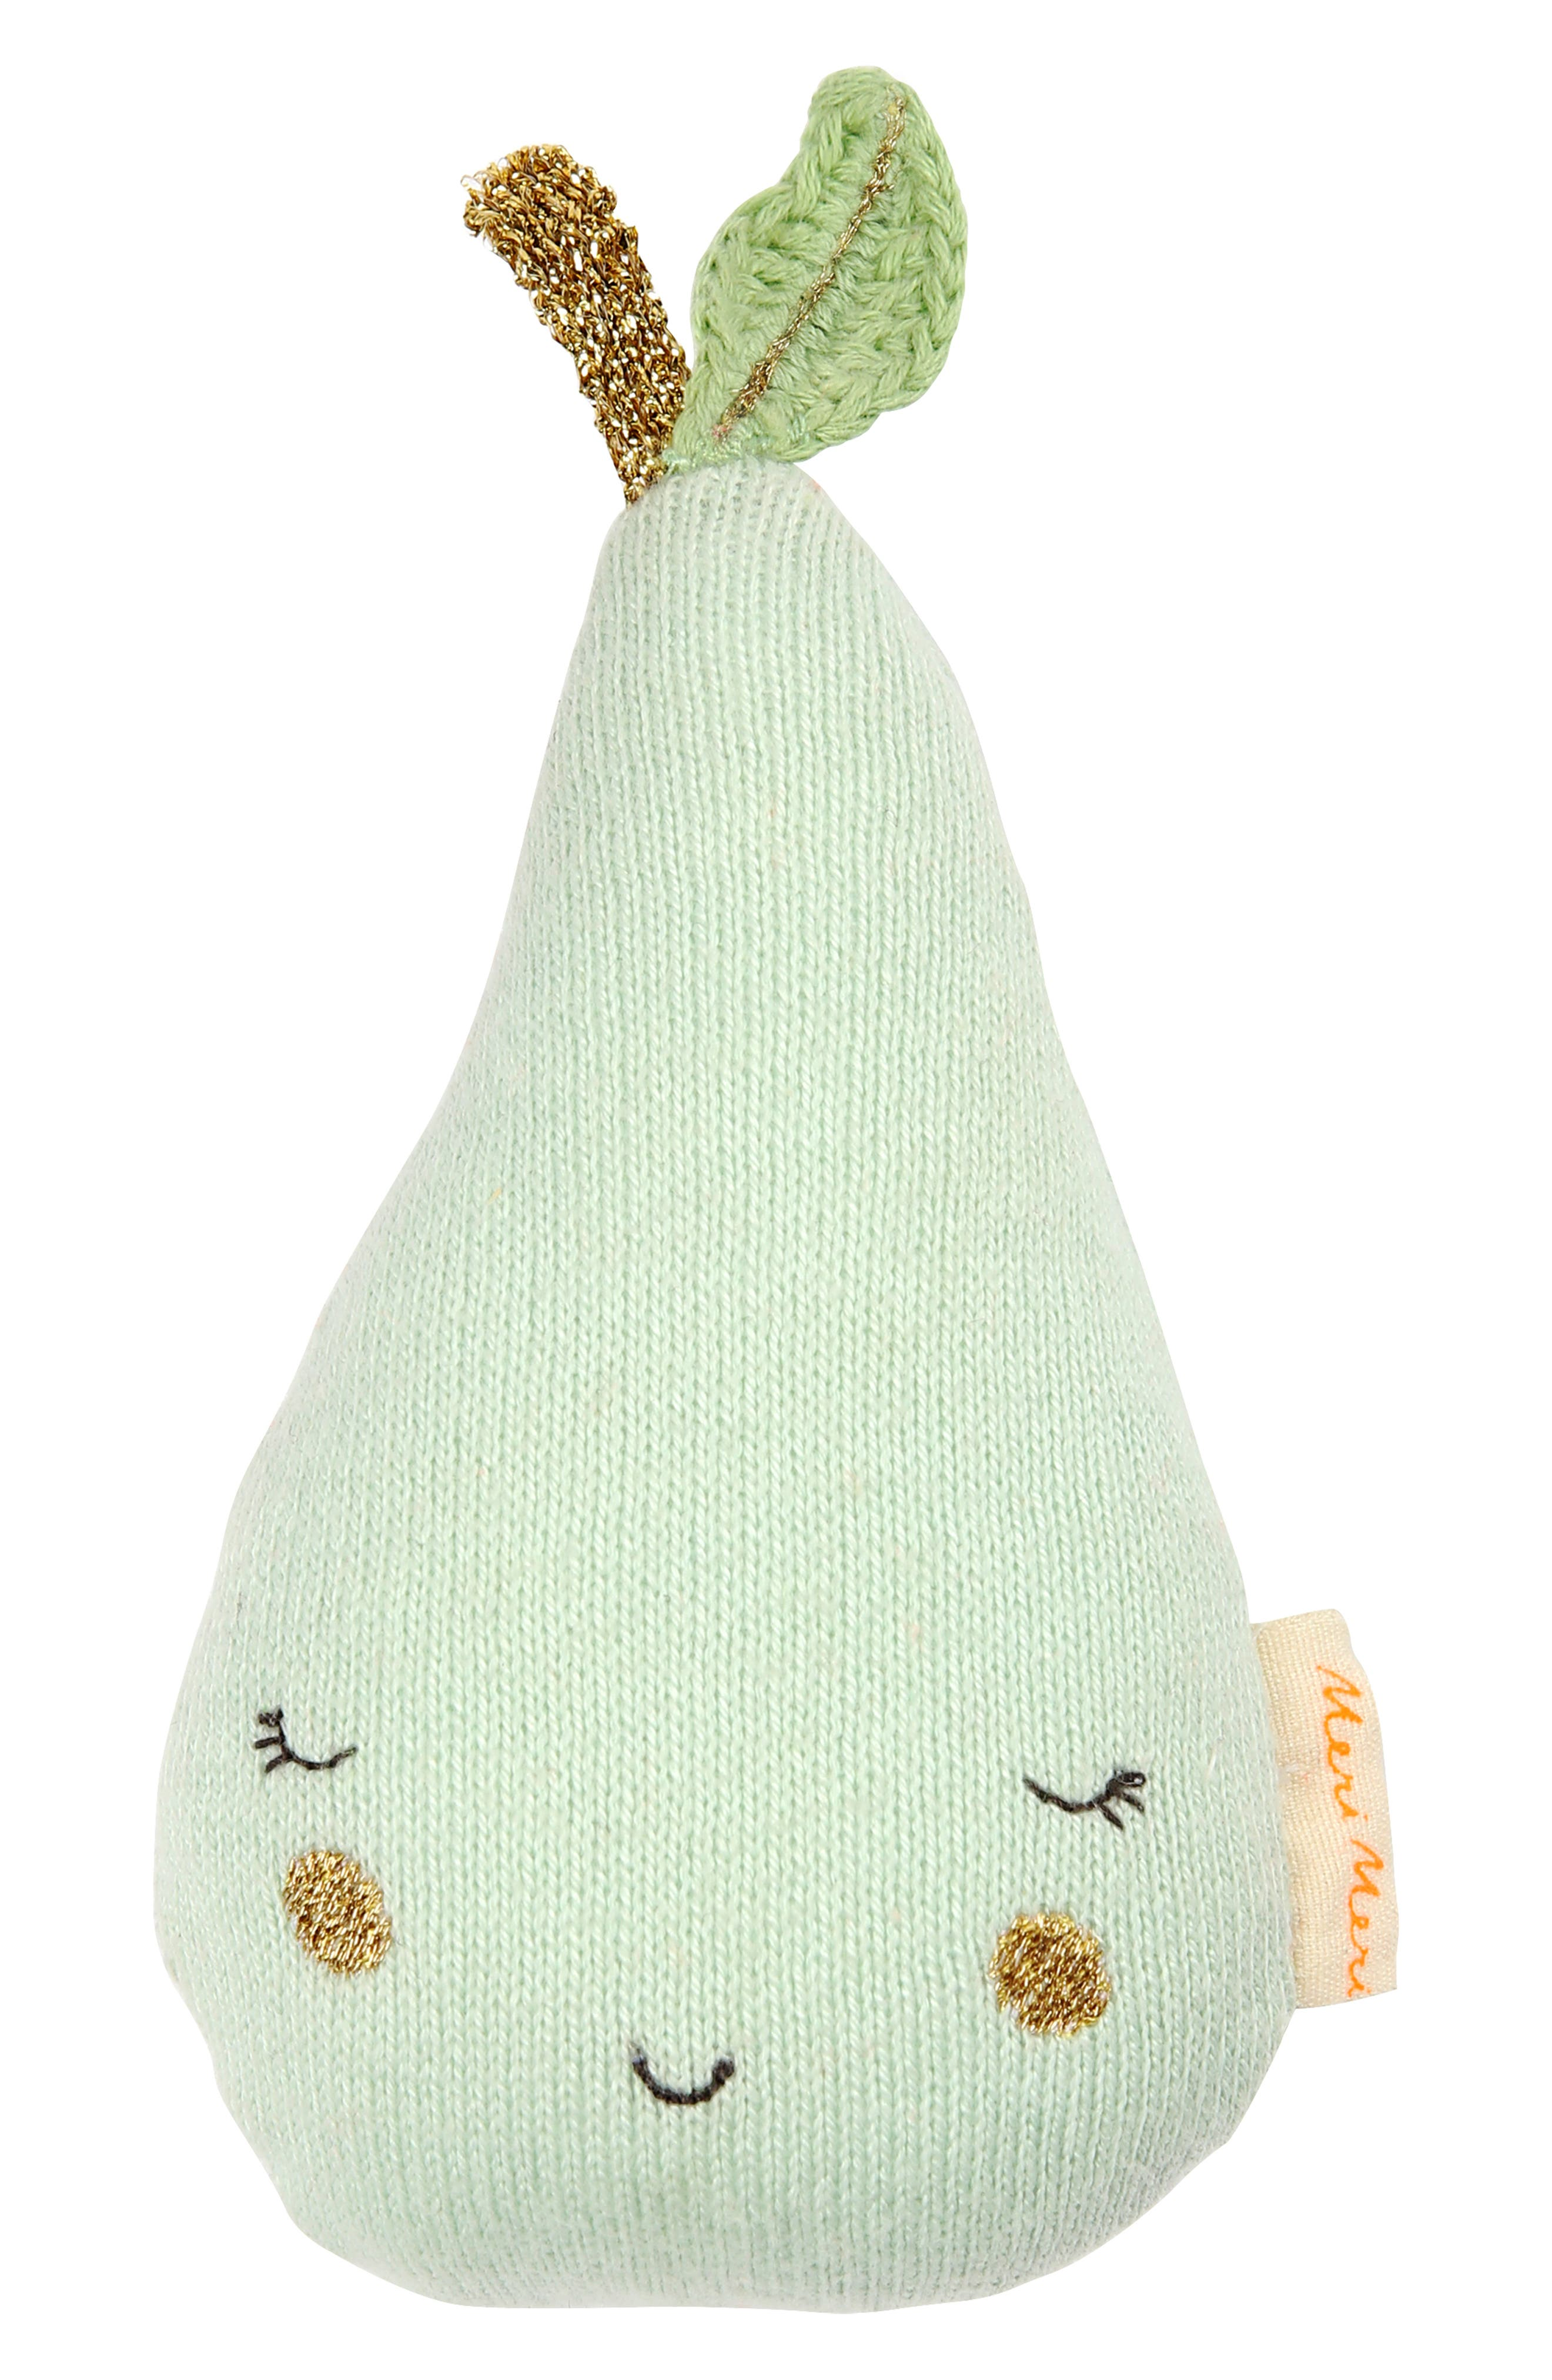 Pear Rattle,                             Main thumbnail 1, color,                             300